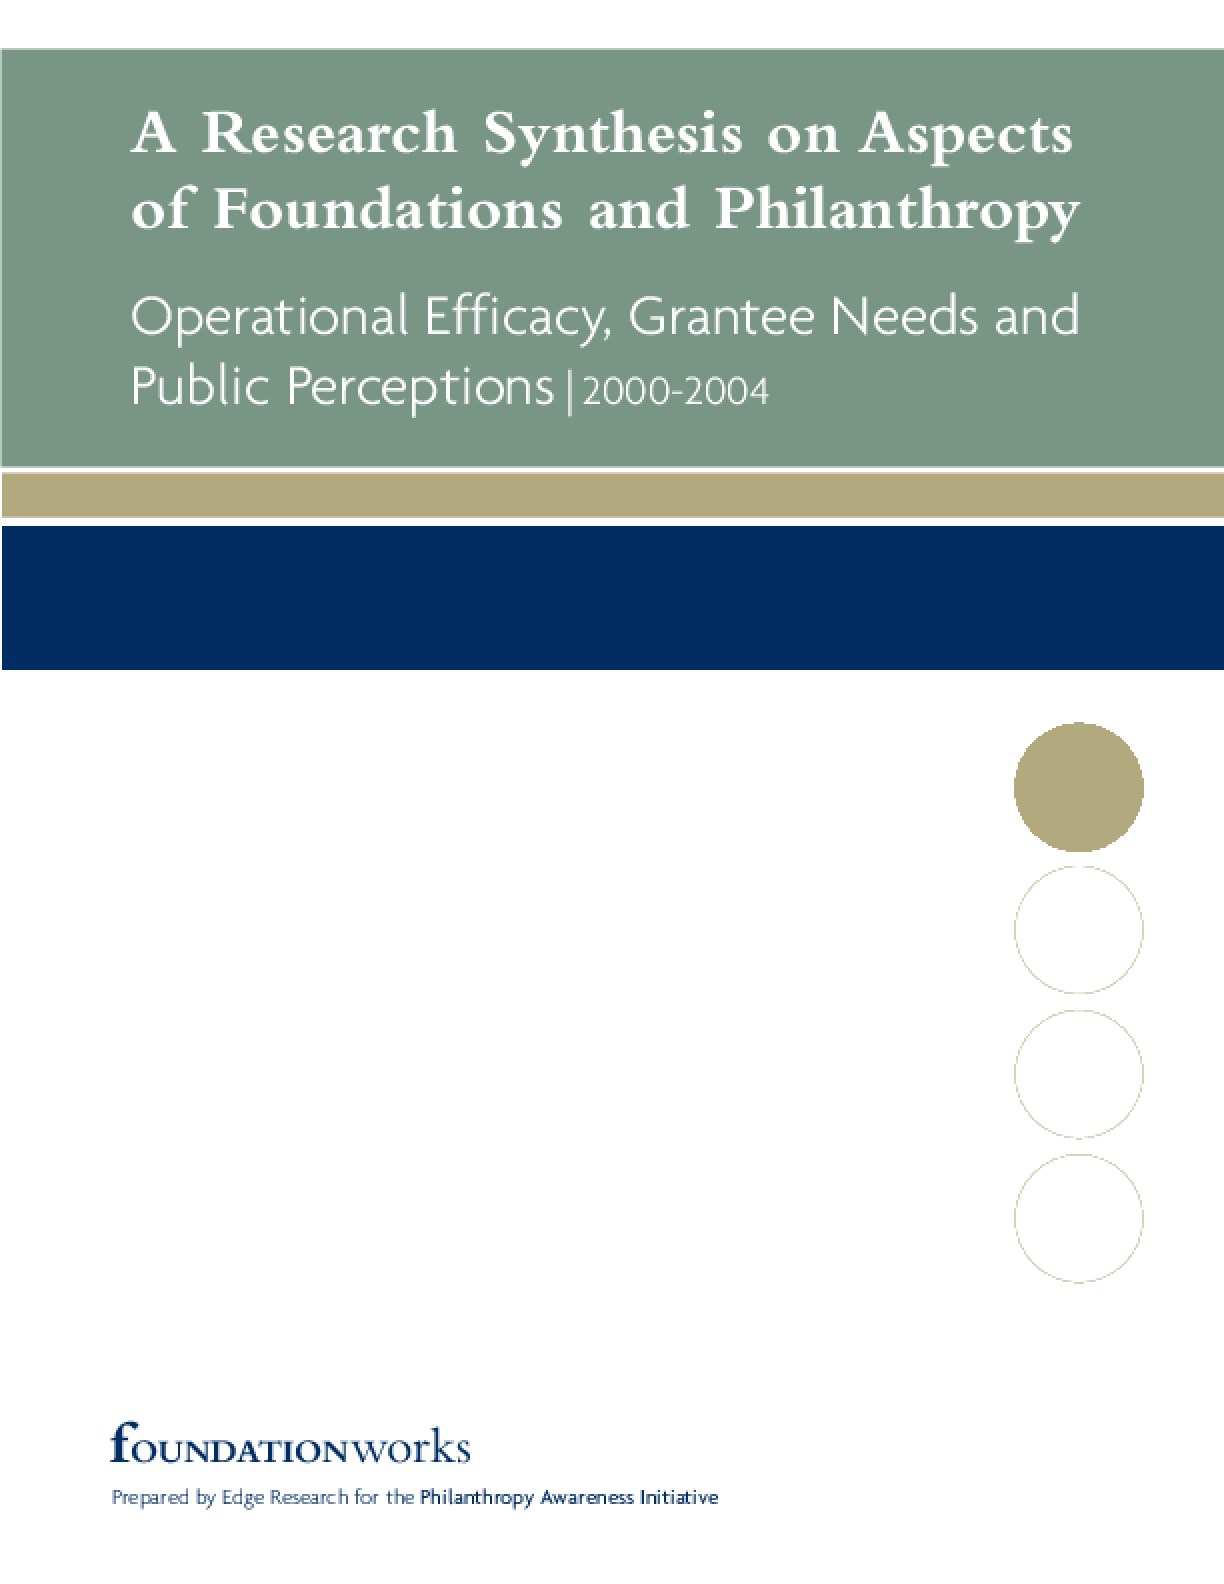 A Research Synthesis on Aspects of Foundations and Philanthropy